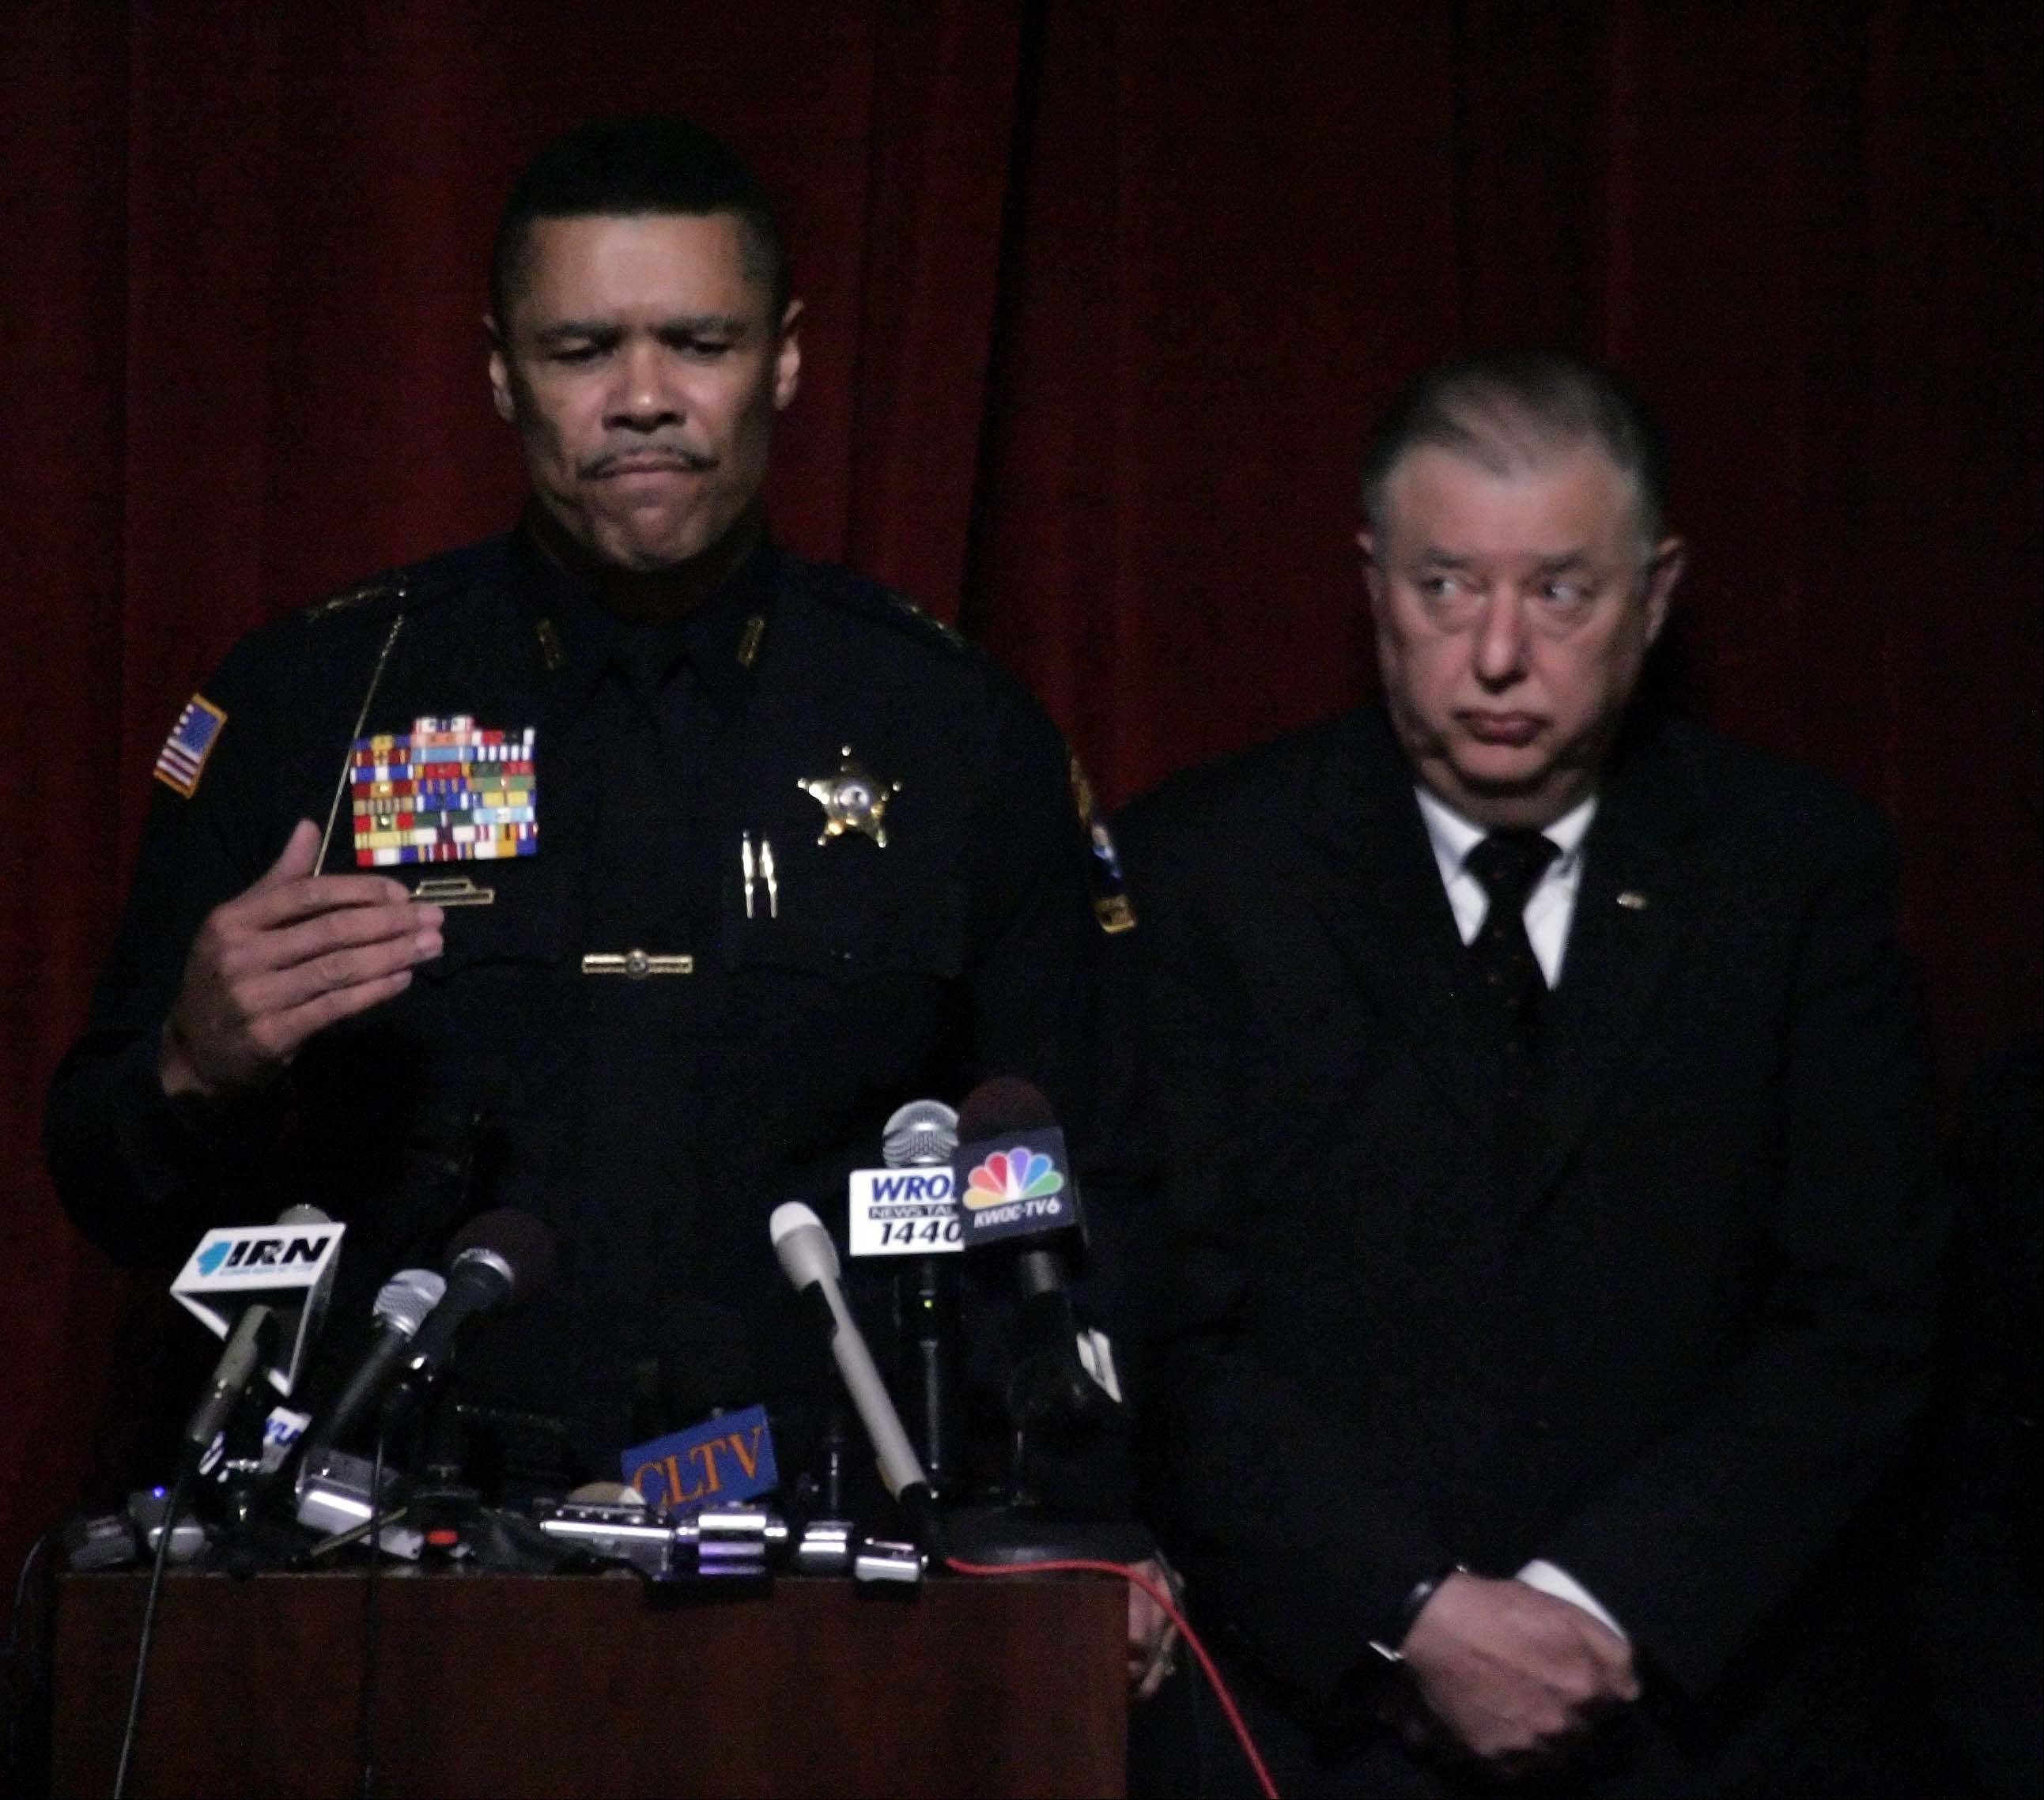 NIU Police Chief Donald Grady, left, stands with NIU President John Peters to address the 2008 campus shootings that left five students dead.